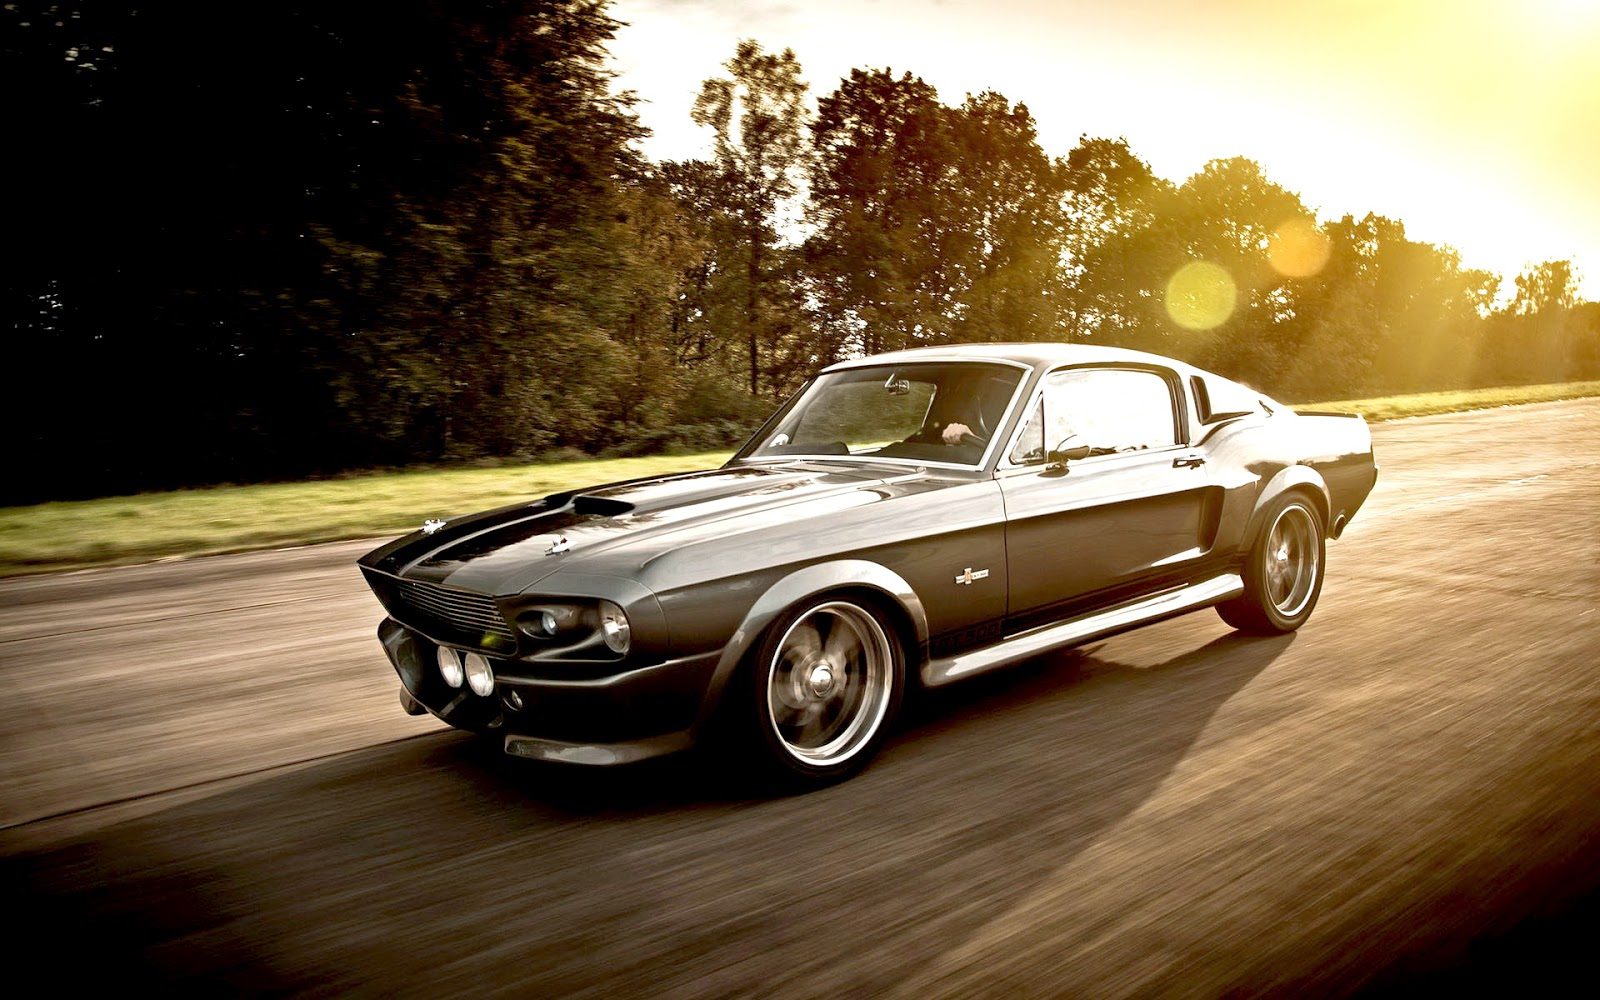 1967 For Mustang GT500 Eleanor on Gone in 60 Seconds movie